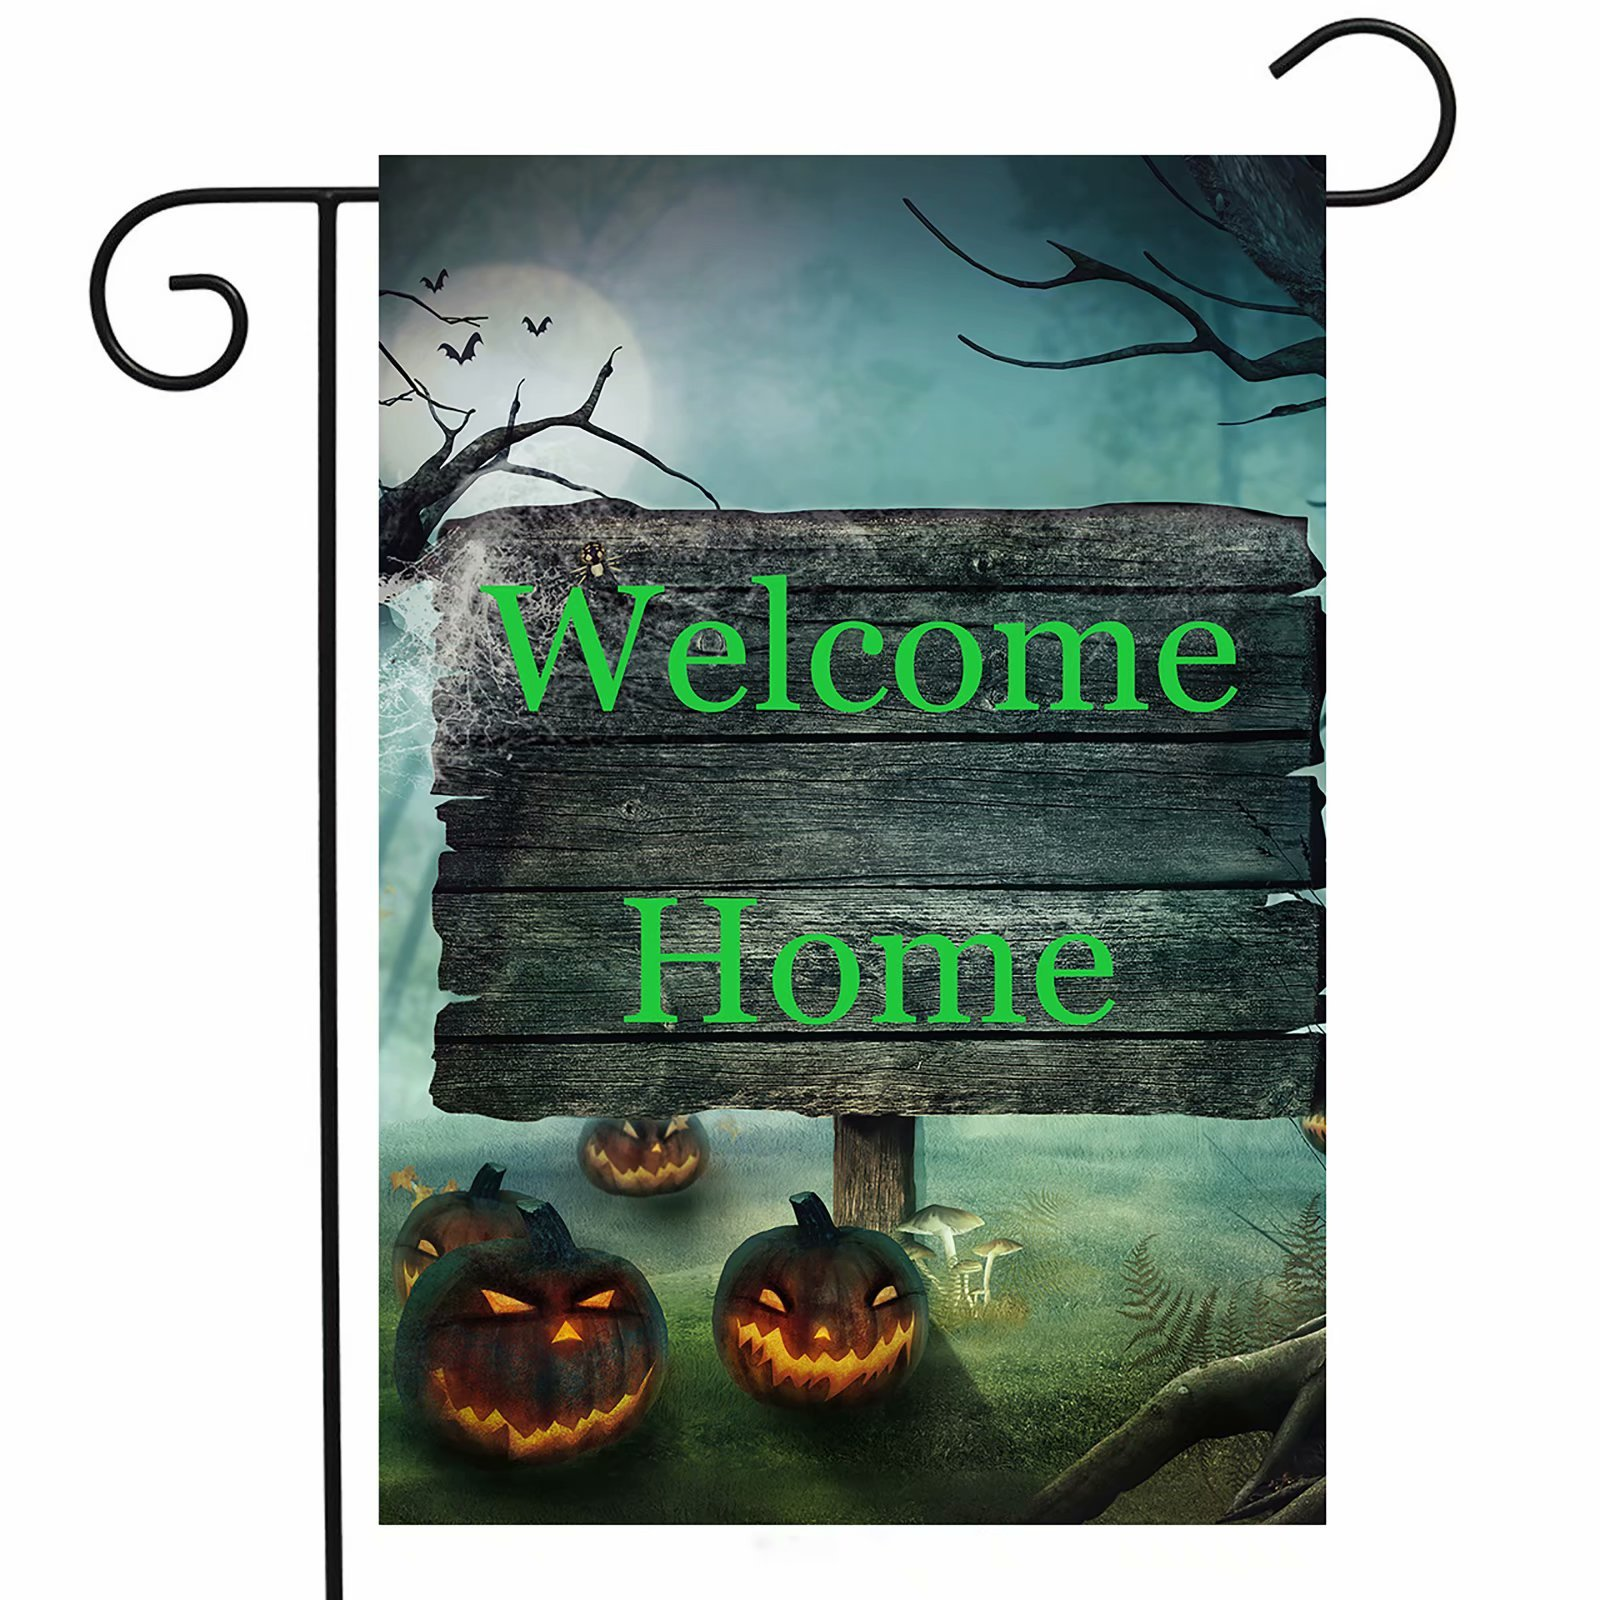 ShineSnow Pumpkin Halloween Mushroom Garden Yard Flag 12''x 18'' Double Sided, Autumn Gothic Mysterious Forest Horror Scary Polyester Welcome House Flag Banners for Patio Lawn Outdoor Home Decor